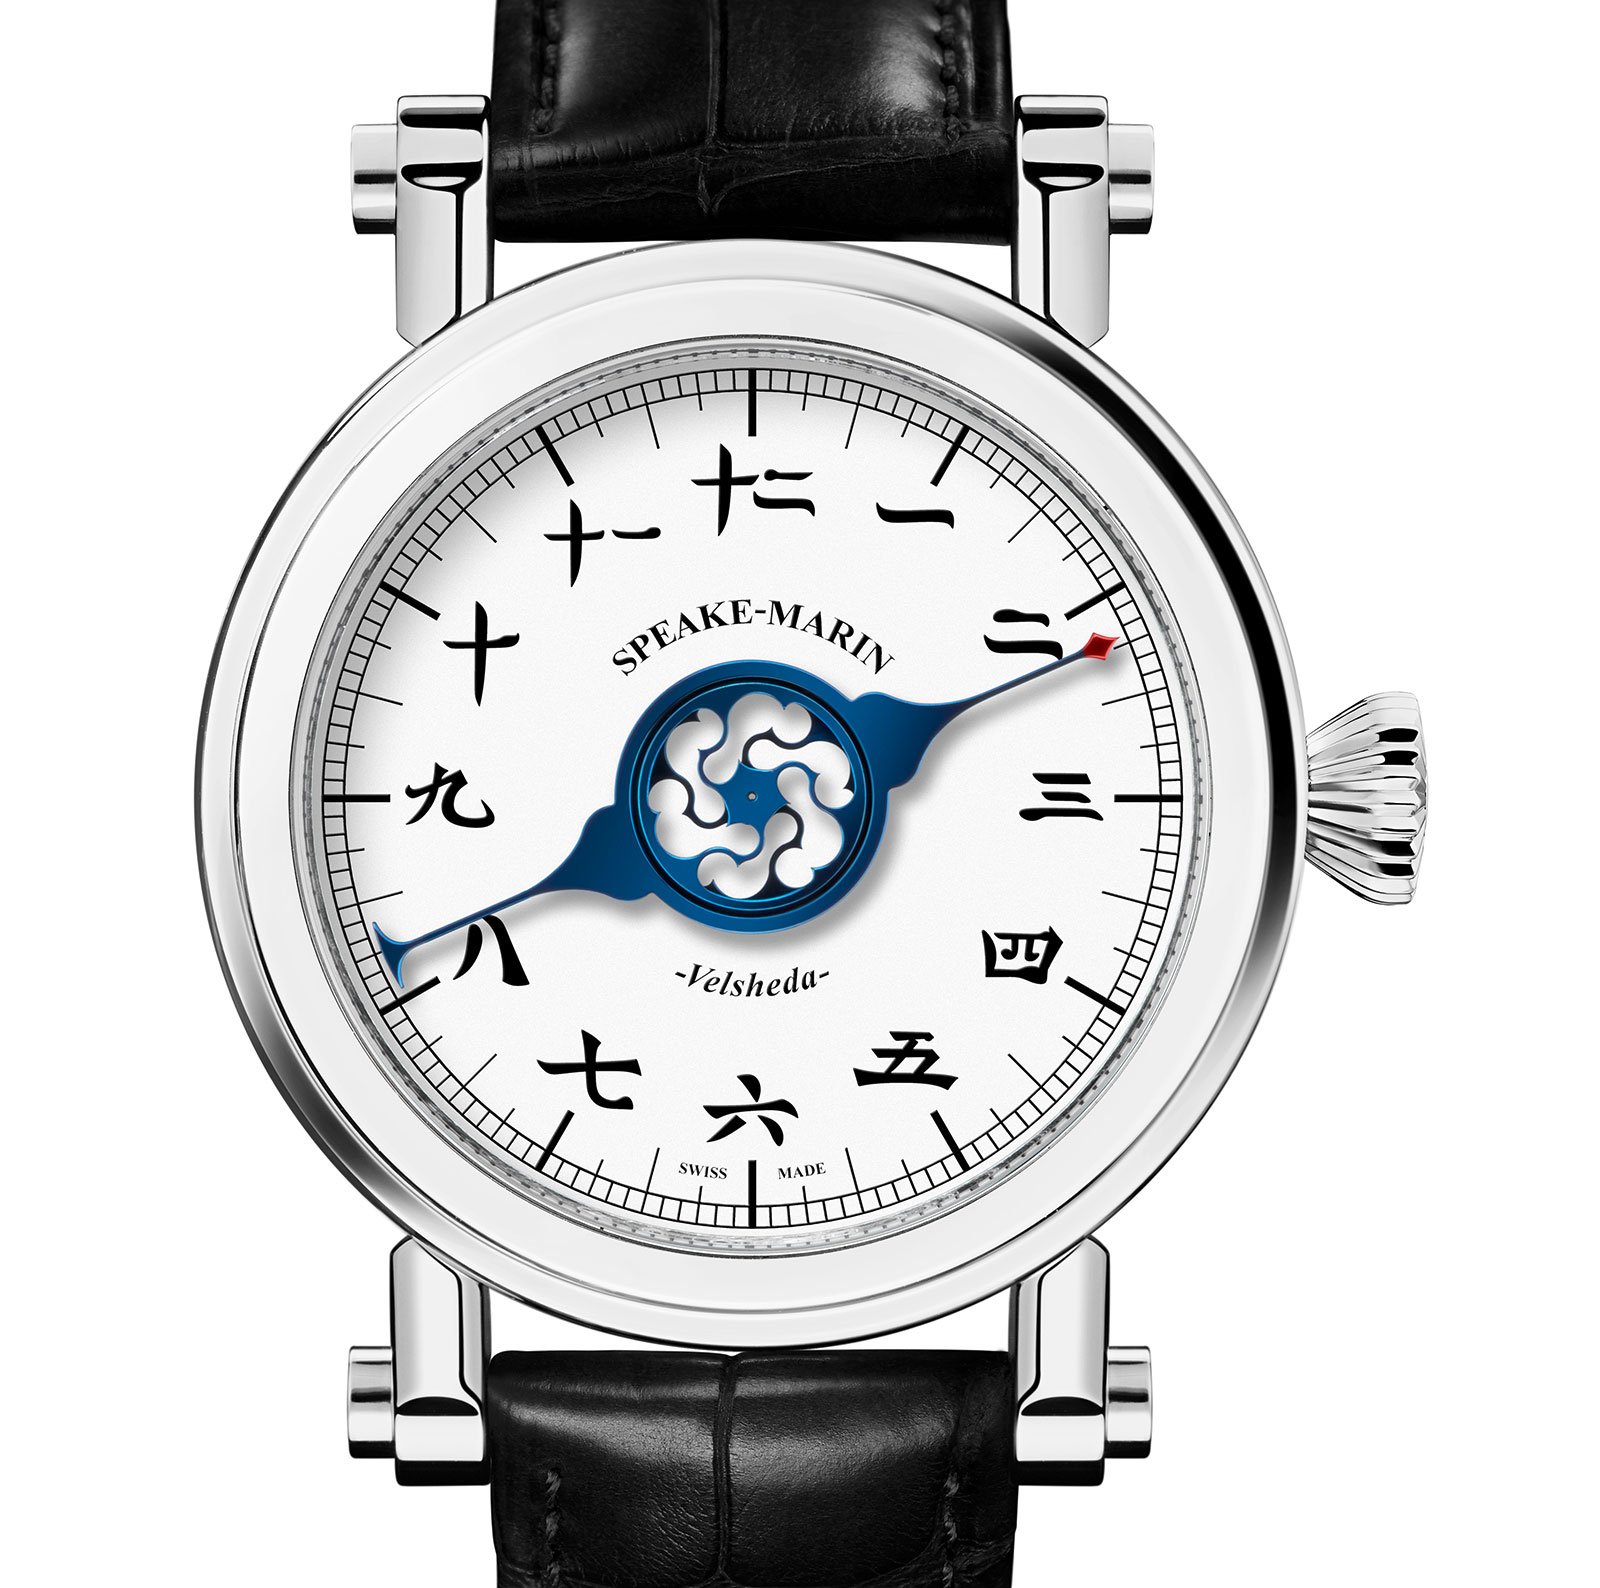 Speake-Marin Veshelda Chinese 1